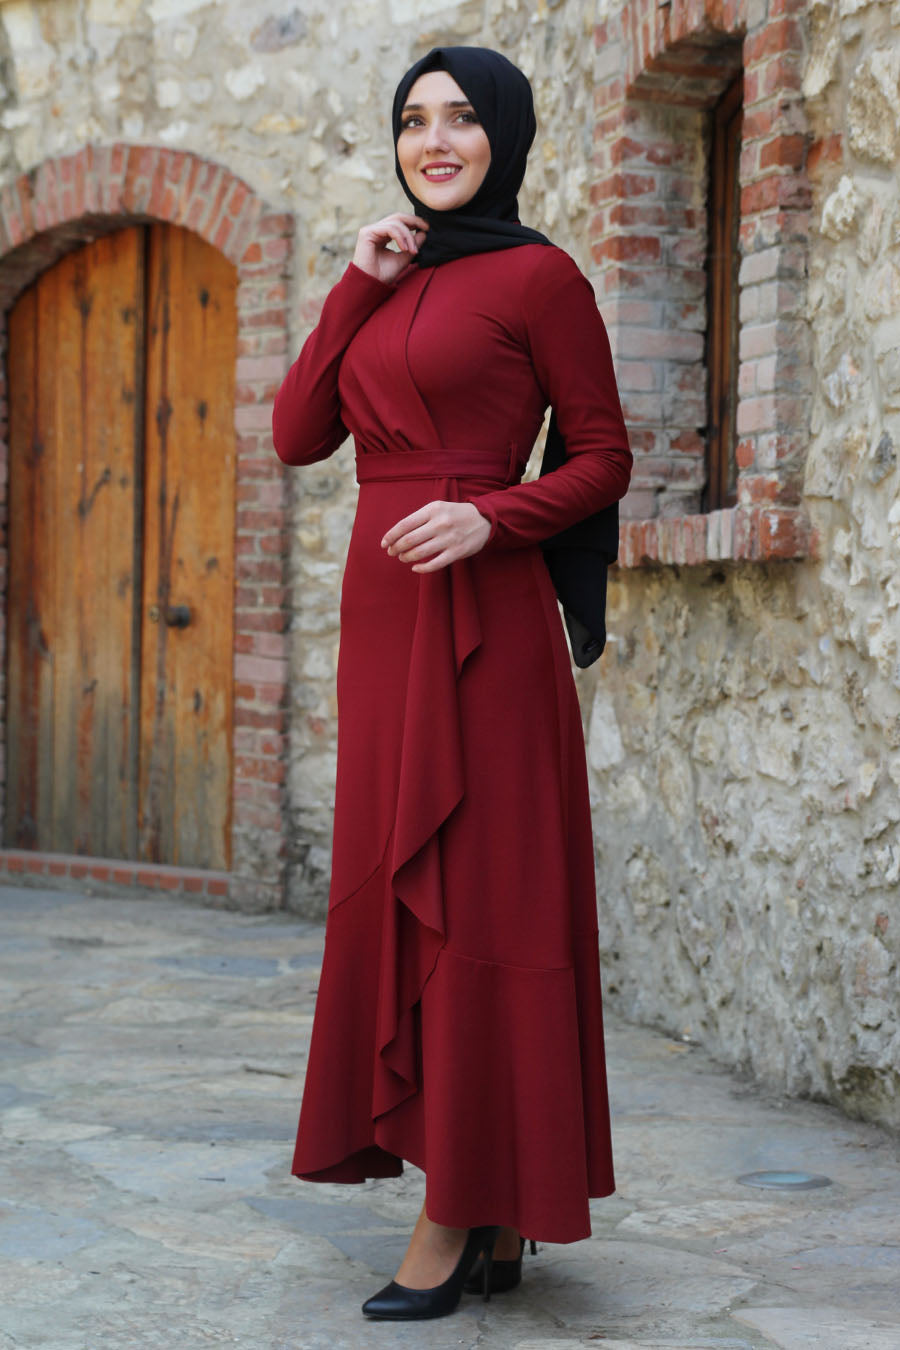 Lara Ruffle Maroon Turkish Dress - Chaddors